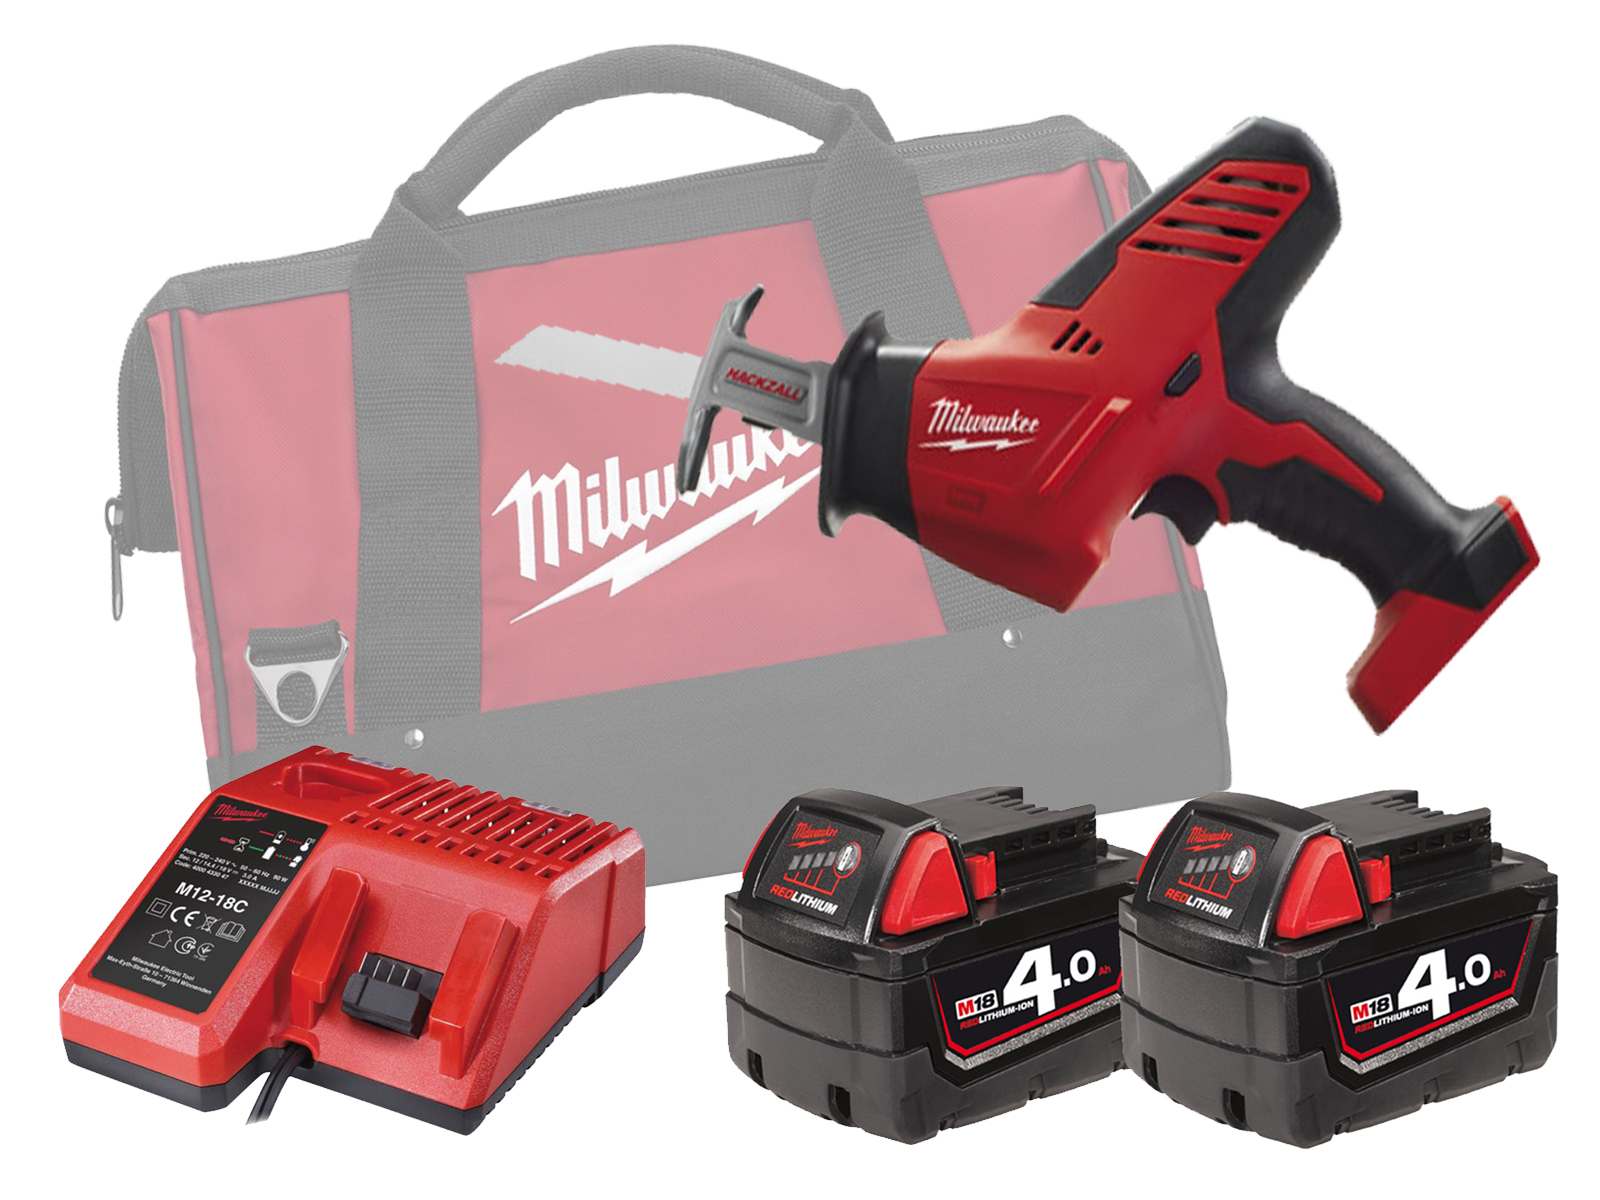 MILWAUKEE 18V BRUSHED COMPACT HACKZALL - C18HZ - 4.0AH PACK